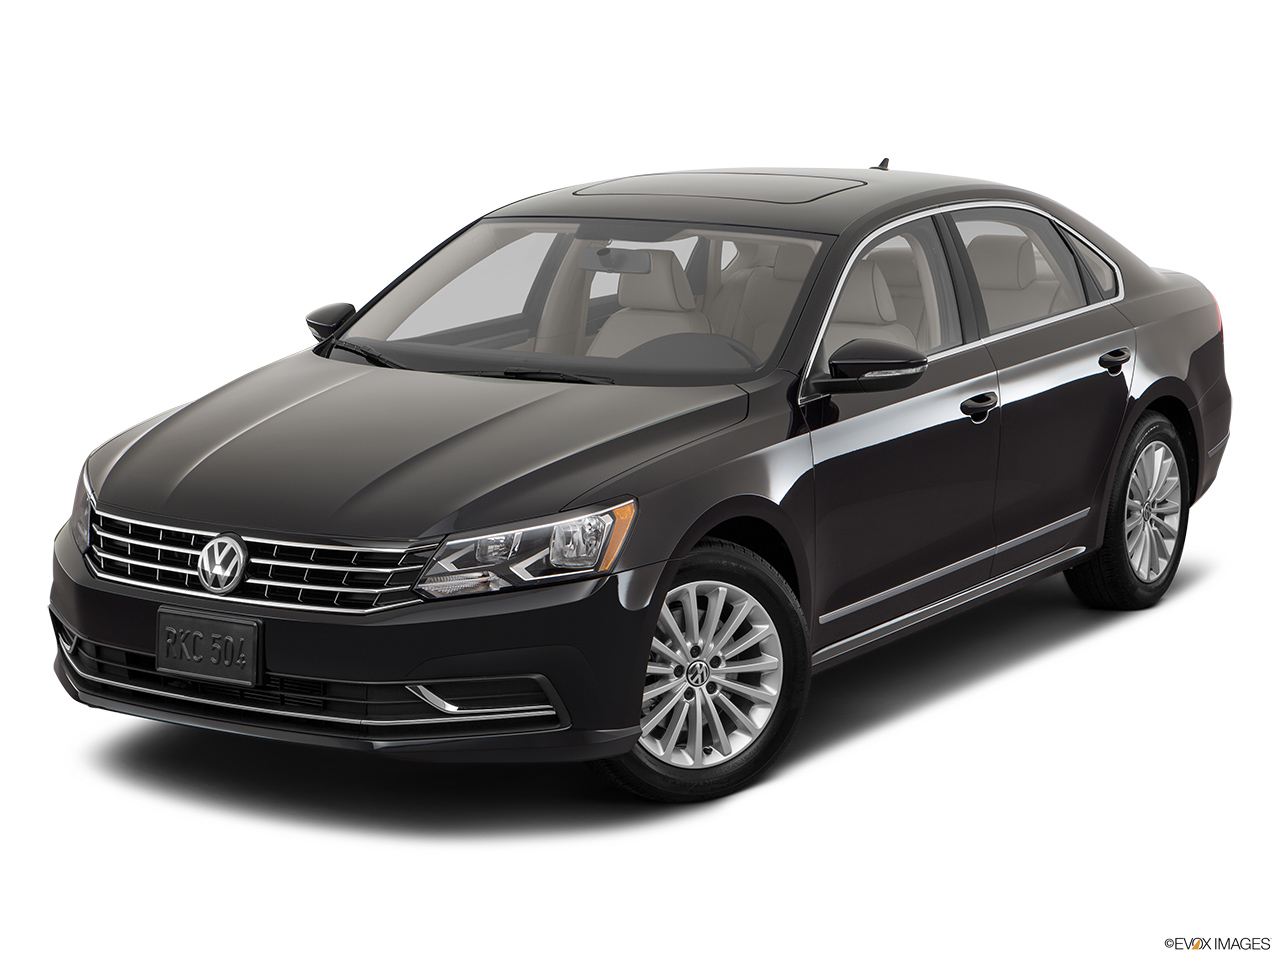 2018 volkswagen passat prices in uae gulf specs reviews for dubai abu dhabi and sharjah. Black Bedroom Furniture Sets. Home Design Ideas